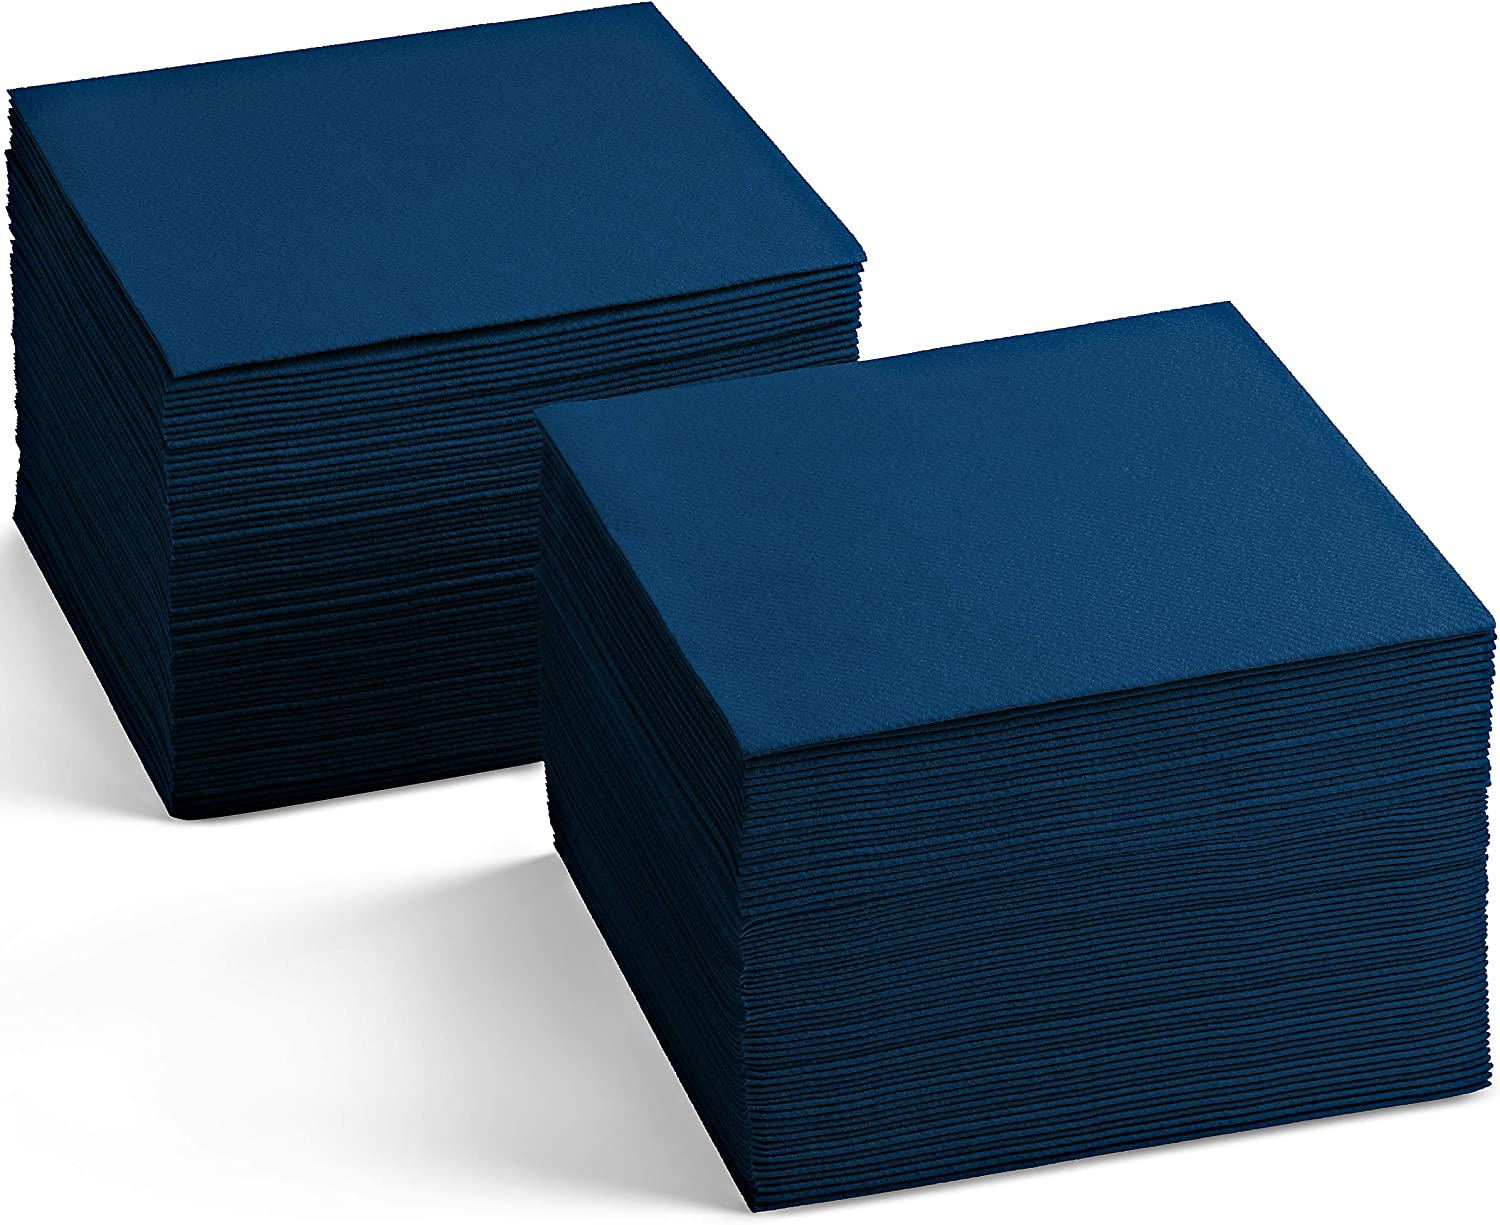 Linen-Feel Colored Cocktail Napkins - Decortive Cloth-Like DARK BLUE Dessert And Beverage Napkins - Soft And Absorbent. For Restaurant, Bar, Cafe, Or Event. (Pack of 200)